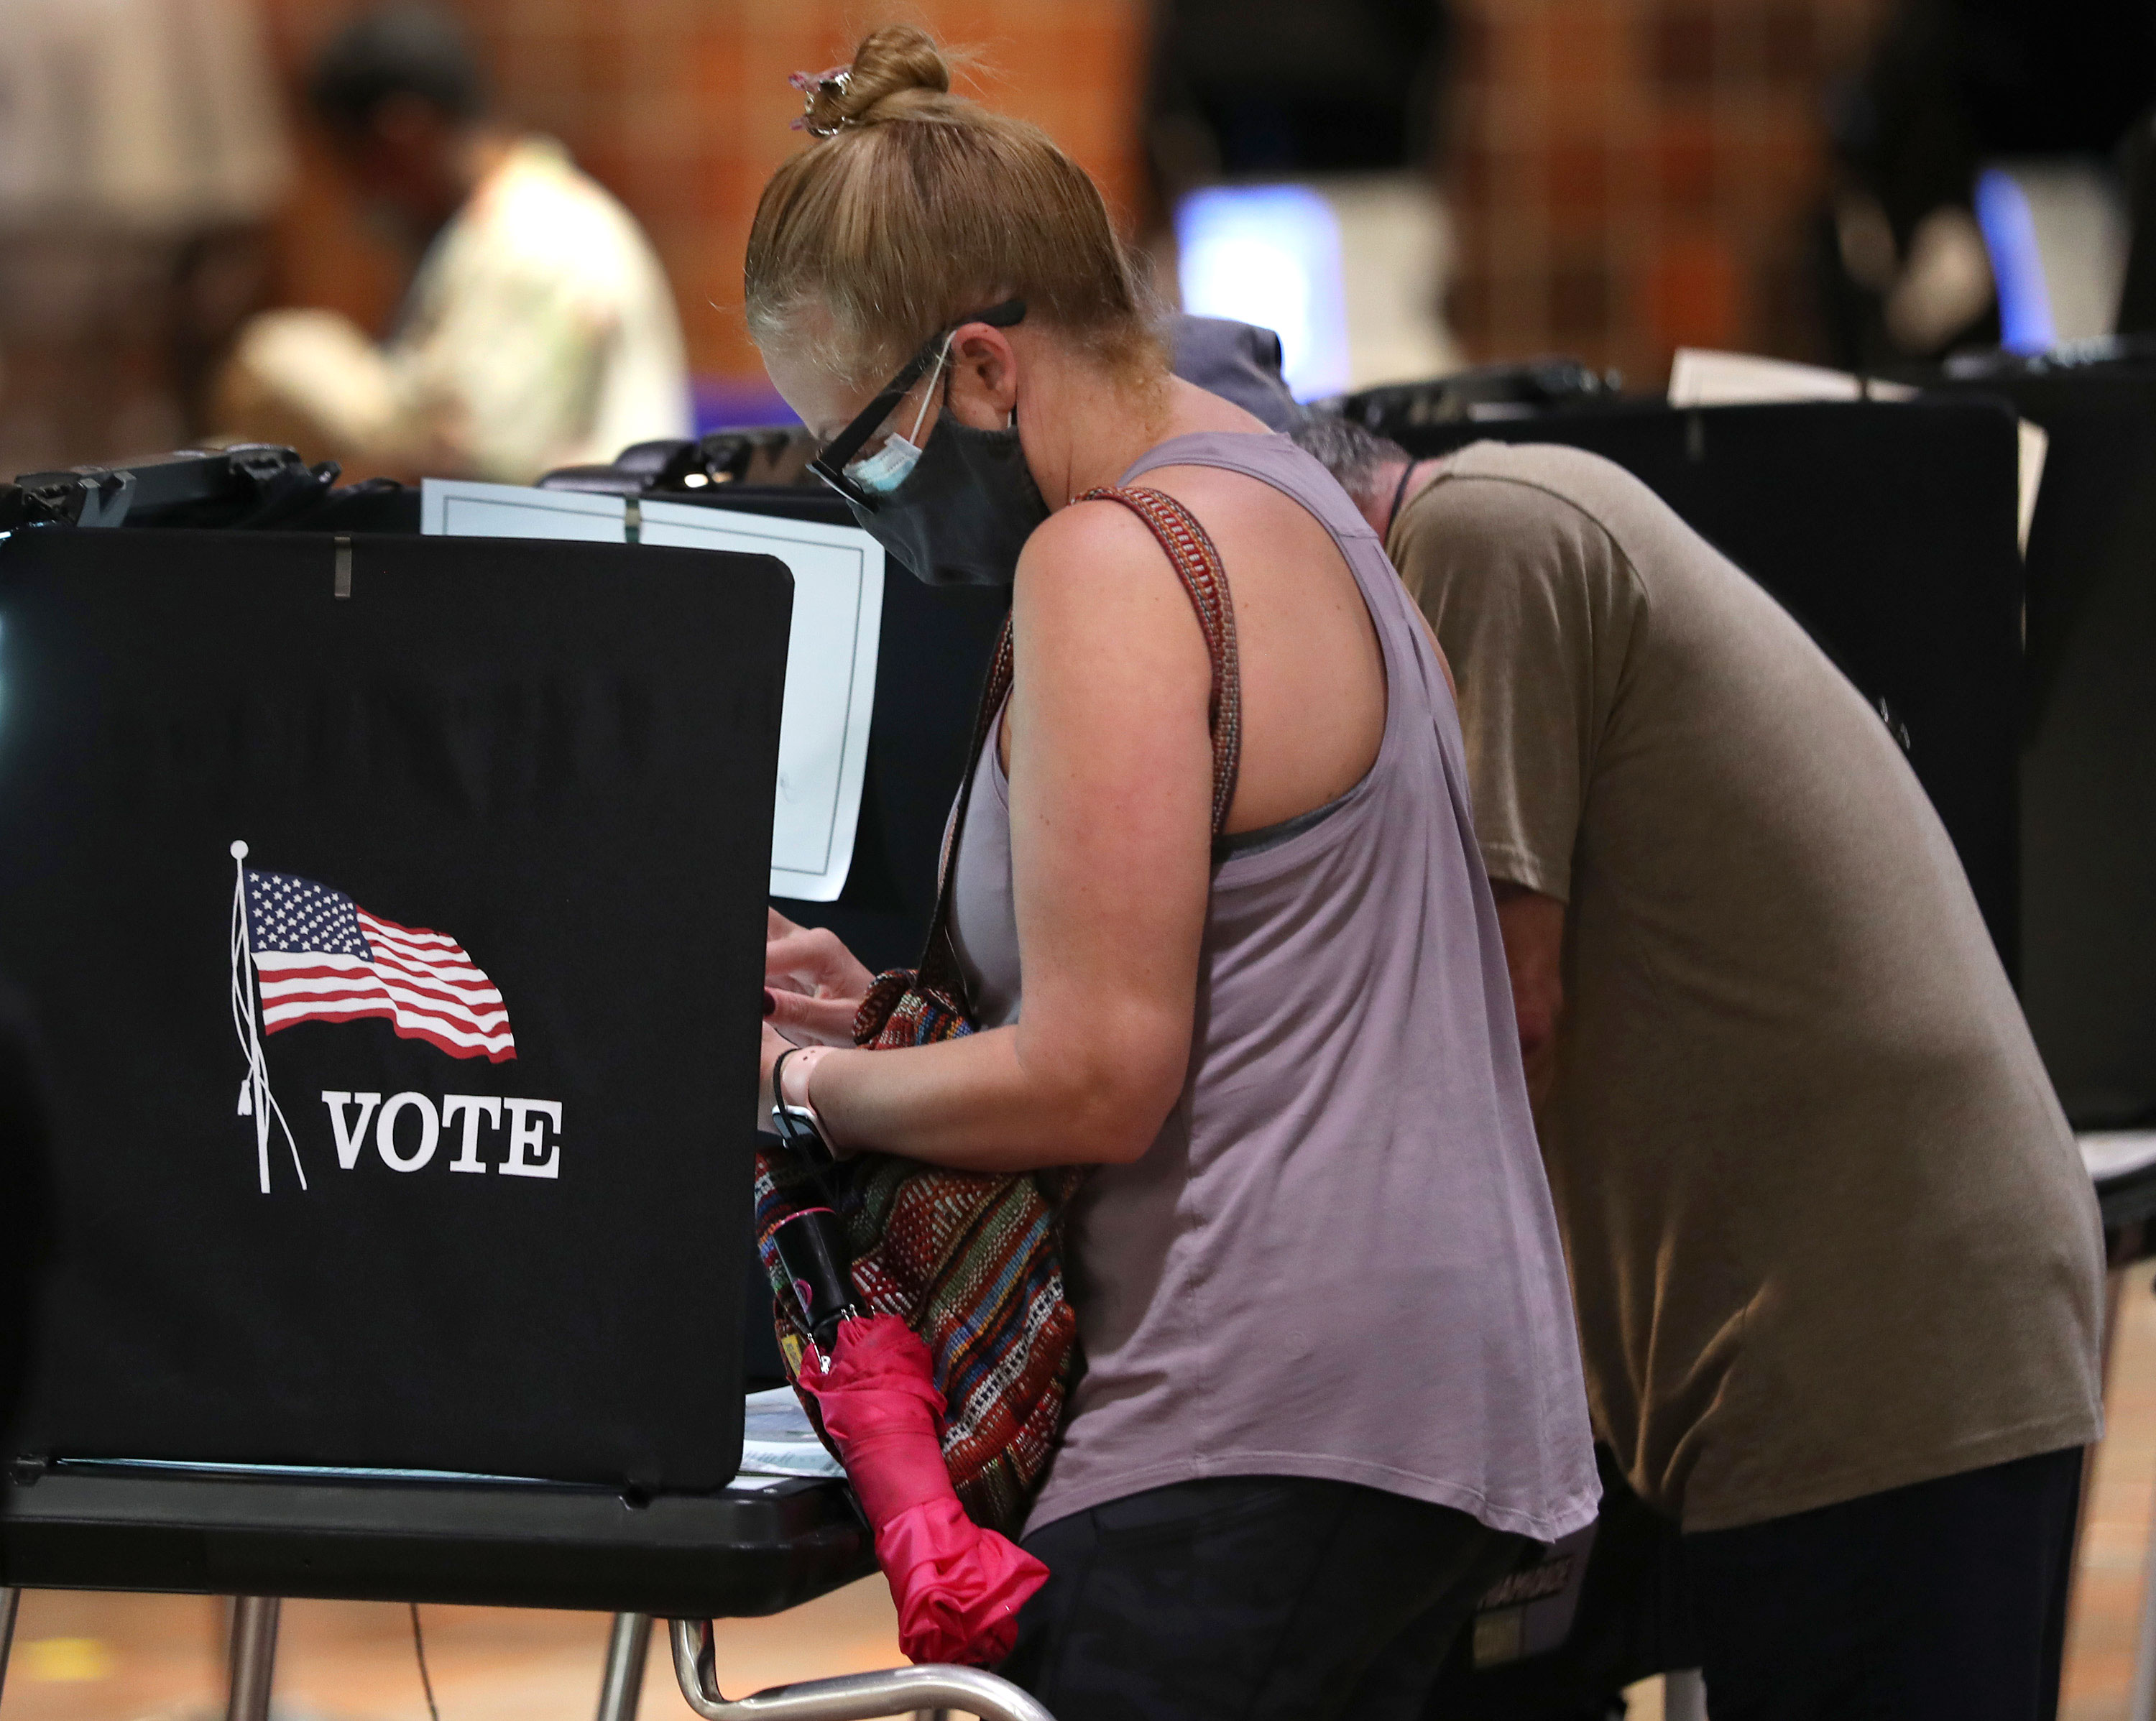 Voters fill out their ballots at the Stephen P. Clark Government Center polling station on October 21 in Miami, Florida.